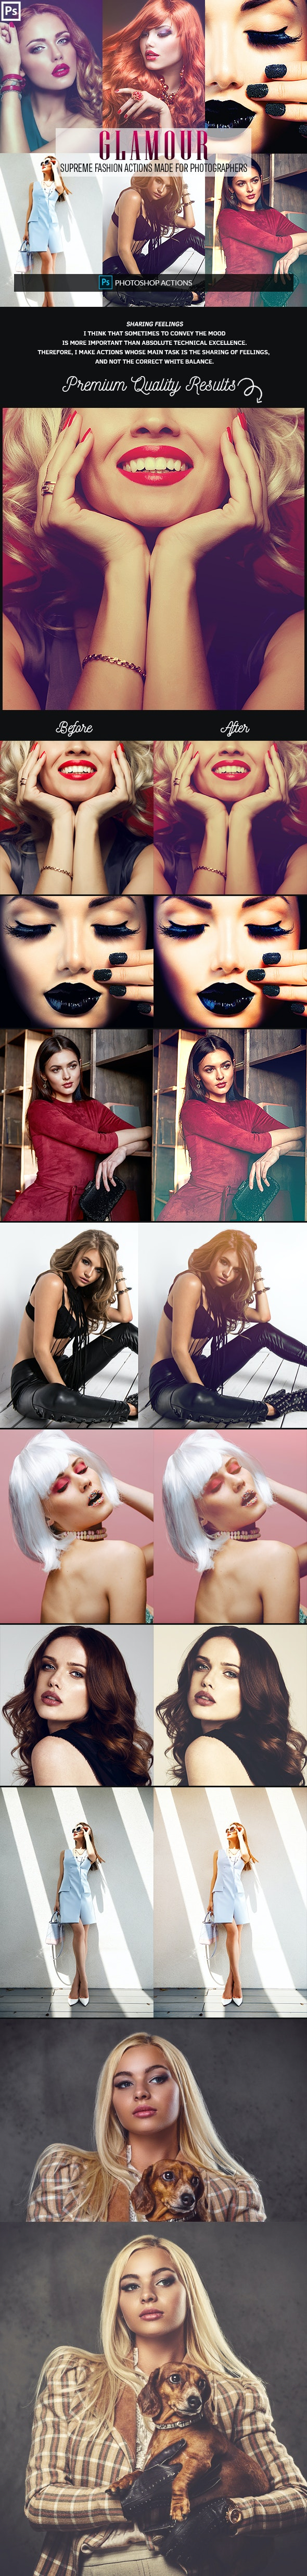 Glamour Fashion Photoshop Actions - Photo Effects Actions